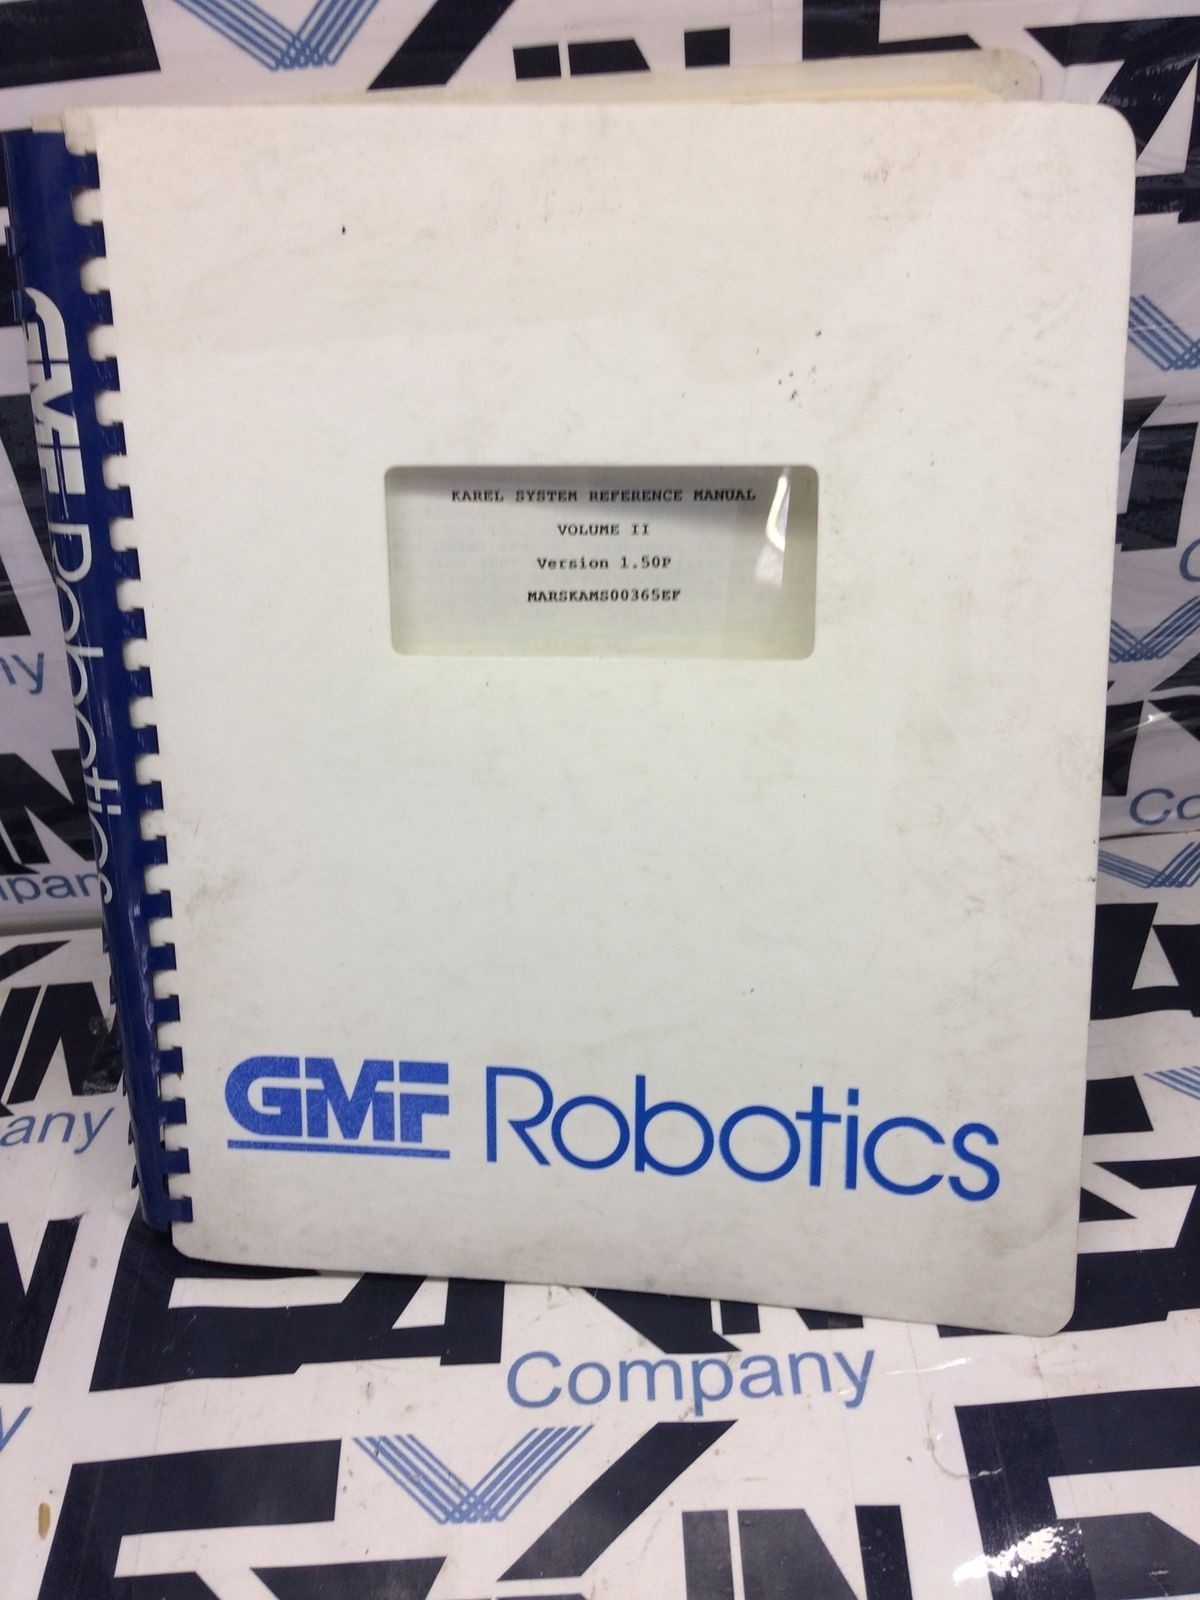 Fanuc KAREL Operations Manual GMF Robotics V1 1.50P VOLUMEN 2